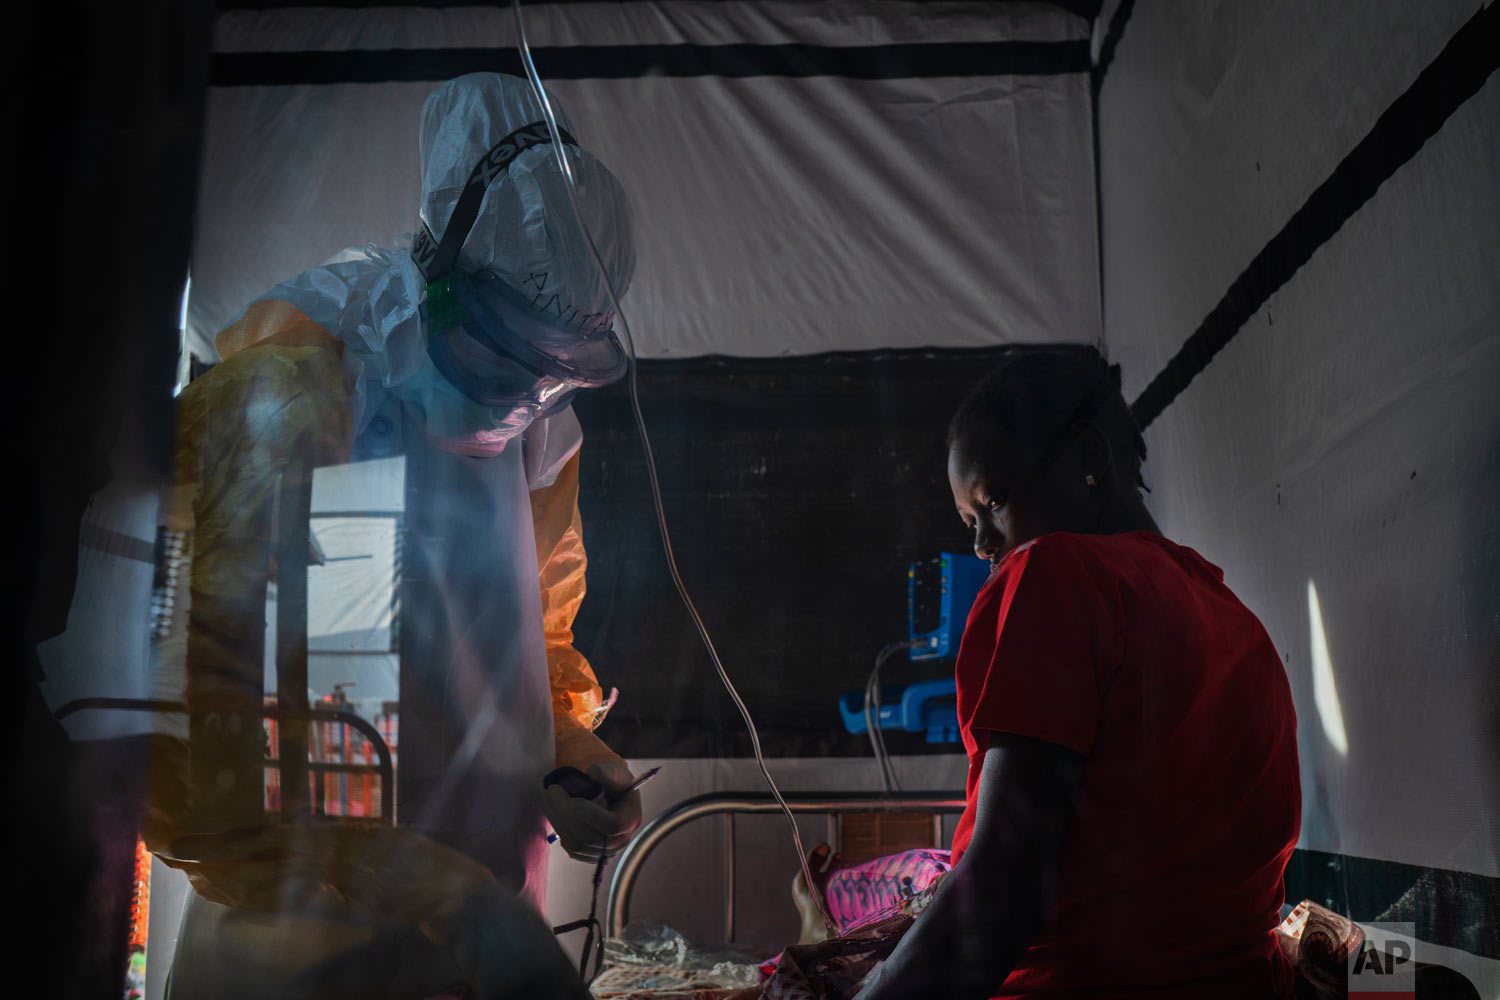 Health workers dressed in protective gear check on Ivette Adania, 24, a mother of four whose husband died of Ebola, at an Ebola treatment center in Beni, Congo, July 13 2019. (AP Photo/Jerome Delay)